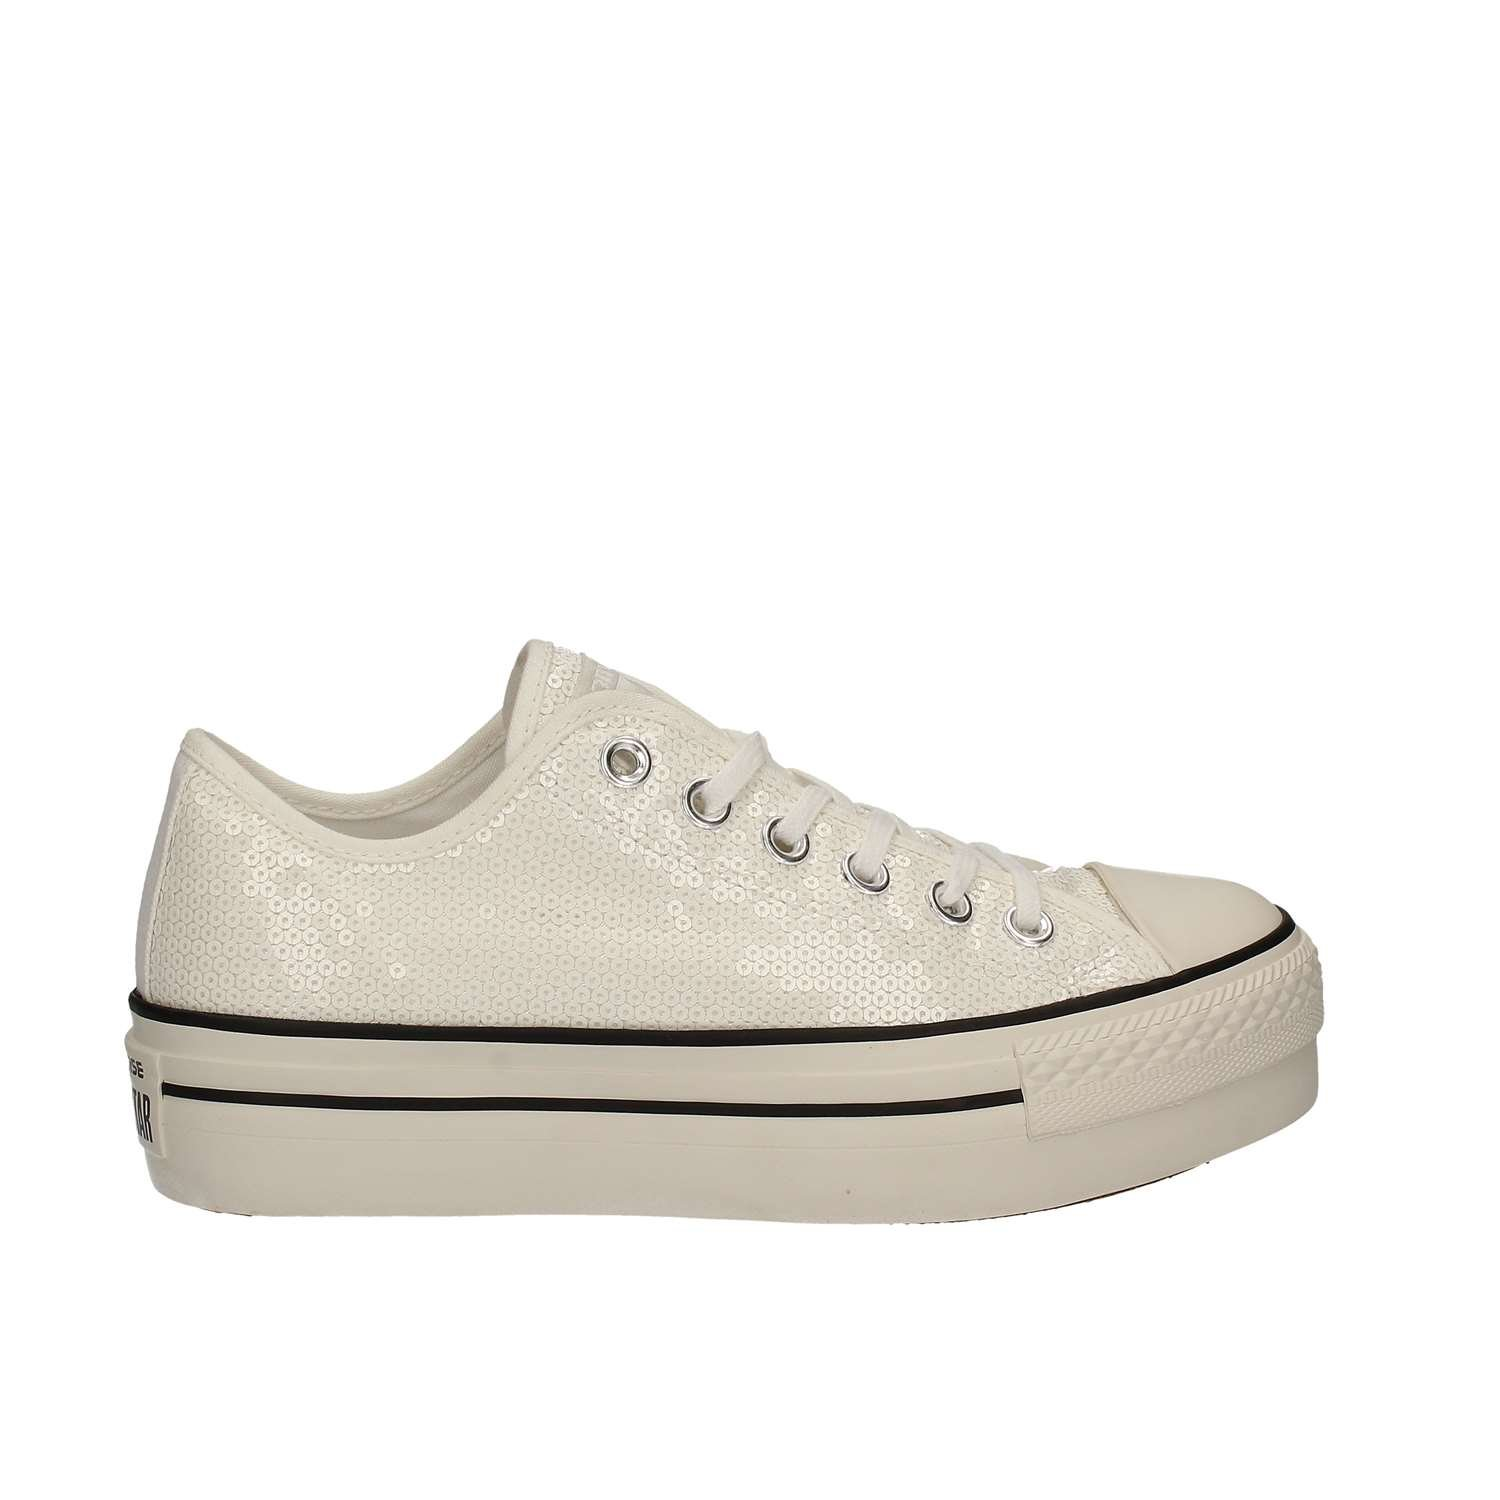 Converse Scarpa Chuck Taylor All Star Low Platform Paillettes Weiß